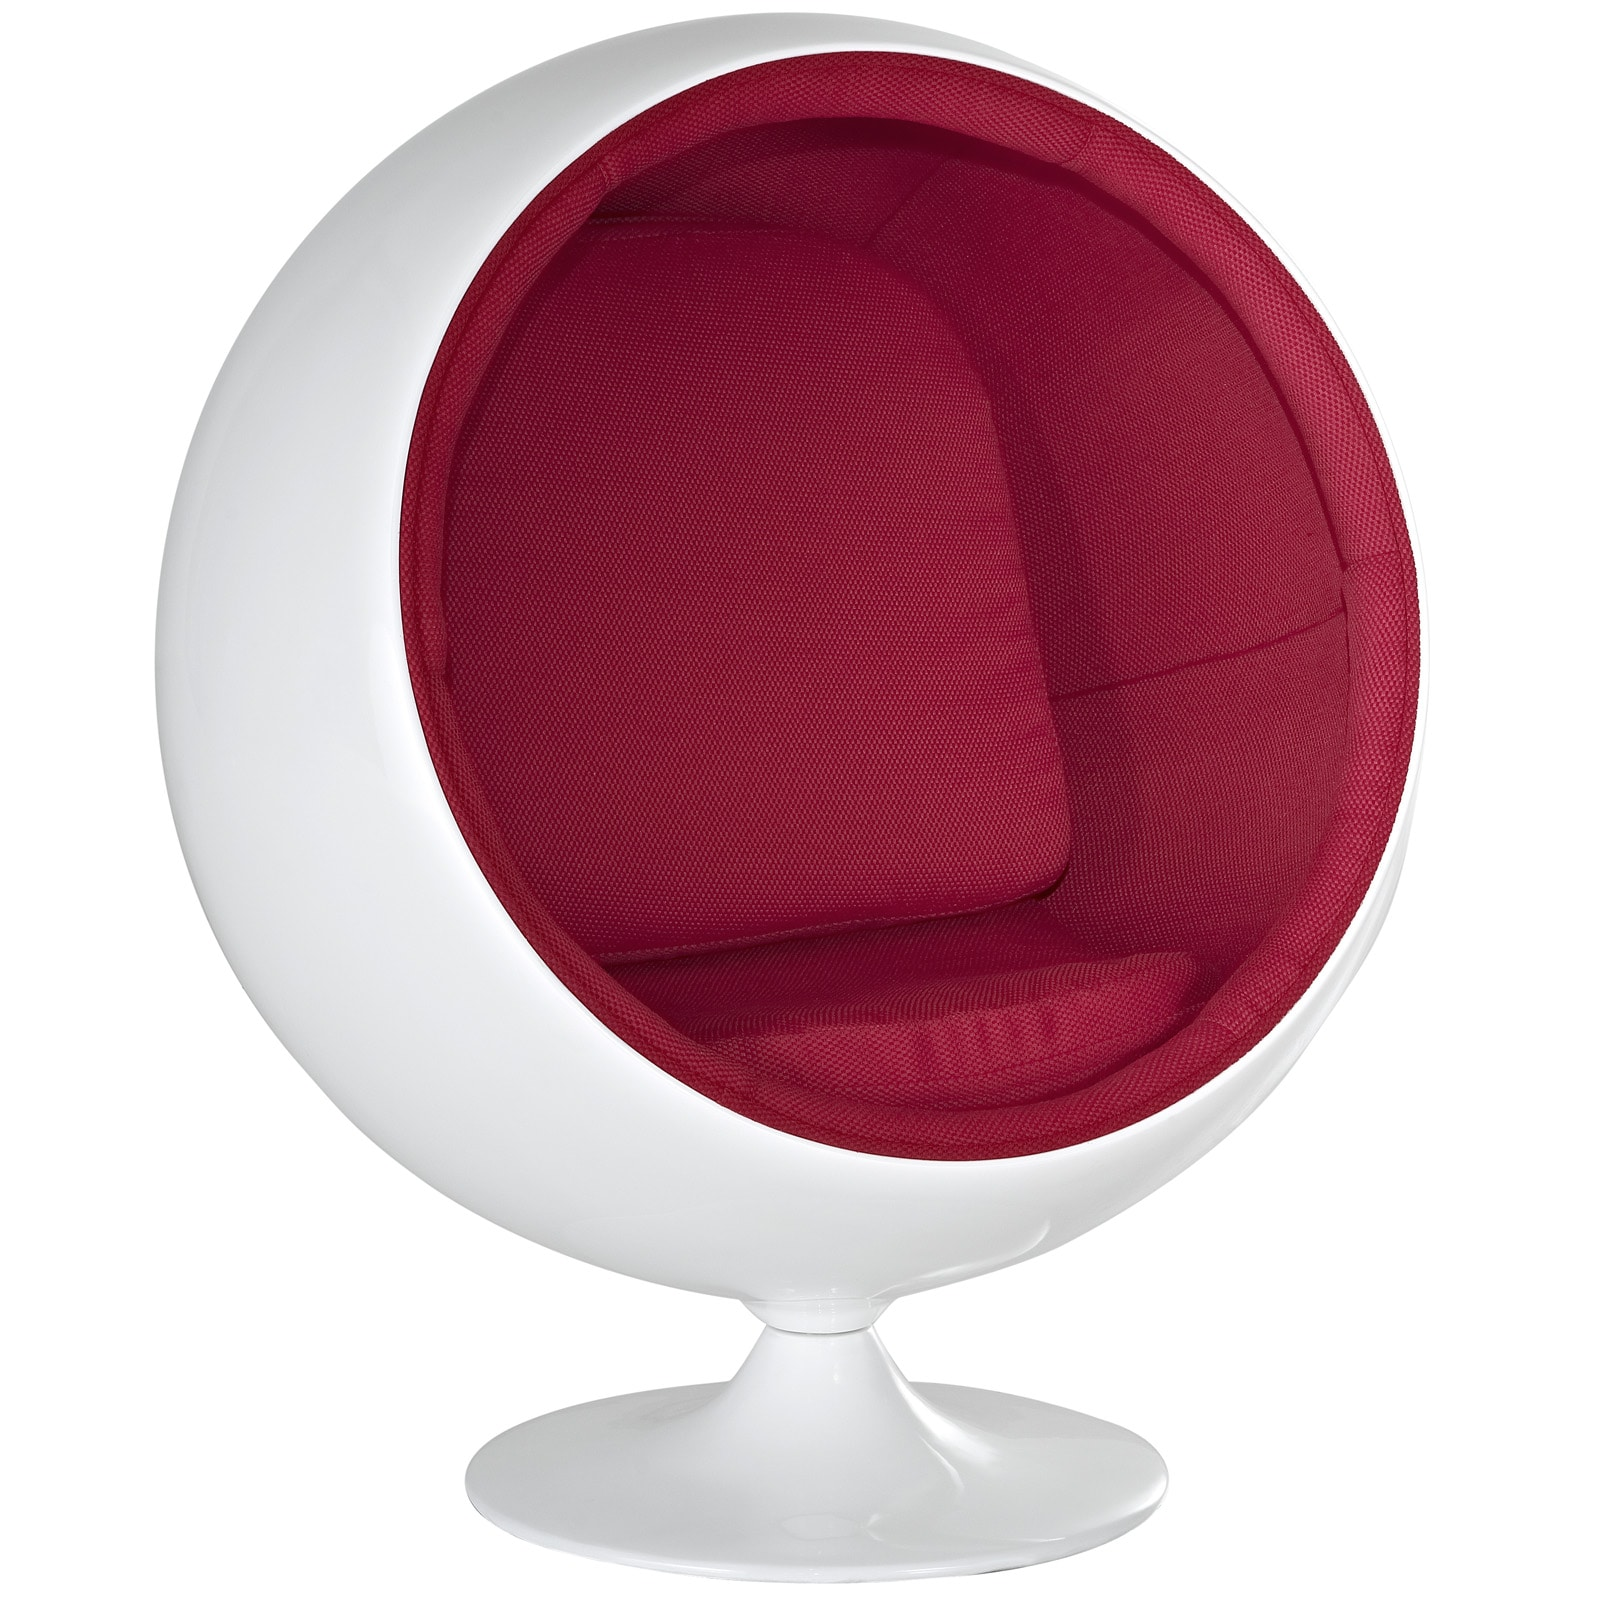 Kids Ball Chair Eero Aarnio Style Kids Ball Chair In Red